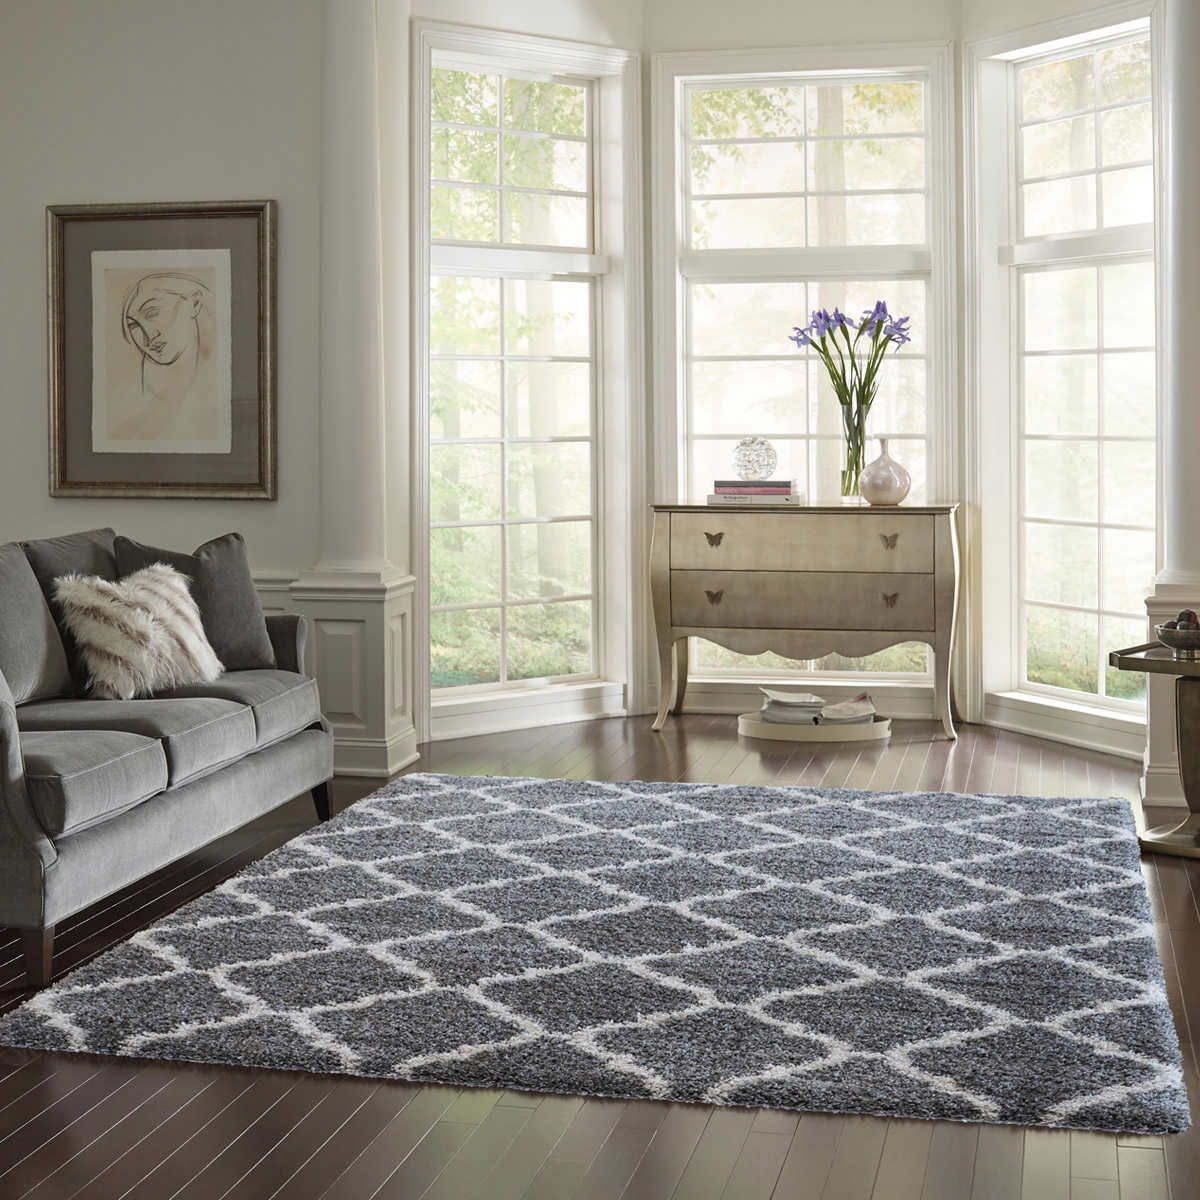 Thomasville Marketplace Luxury Shag Rugs Area Rug Ideas